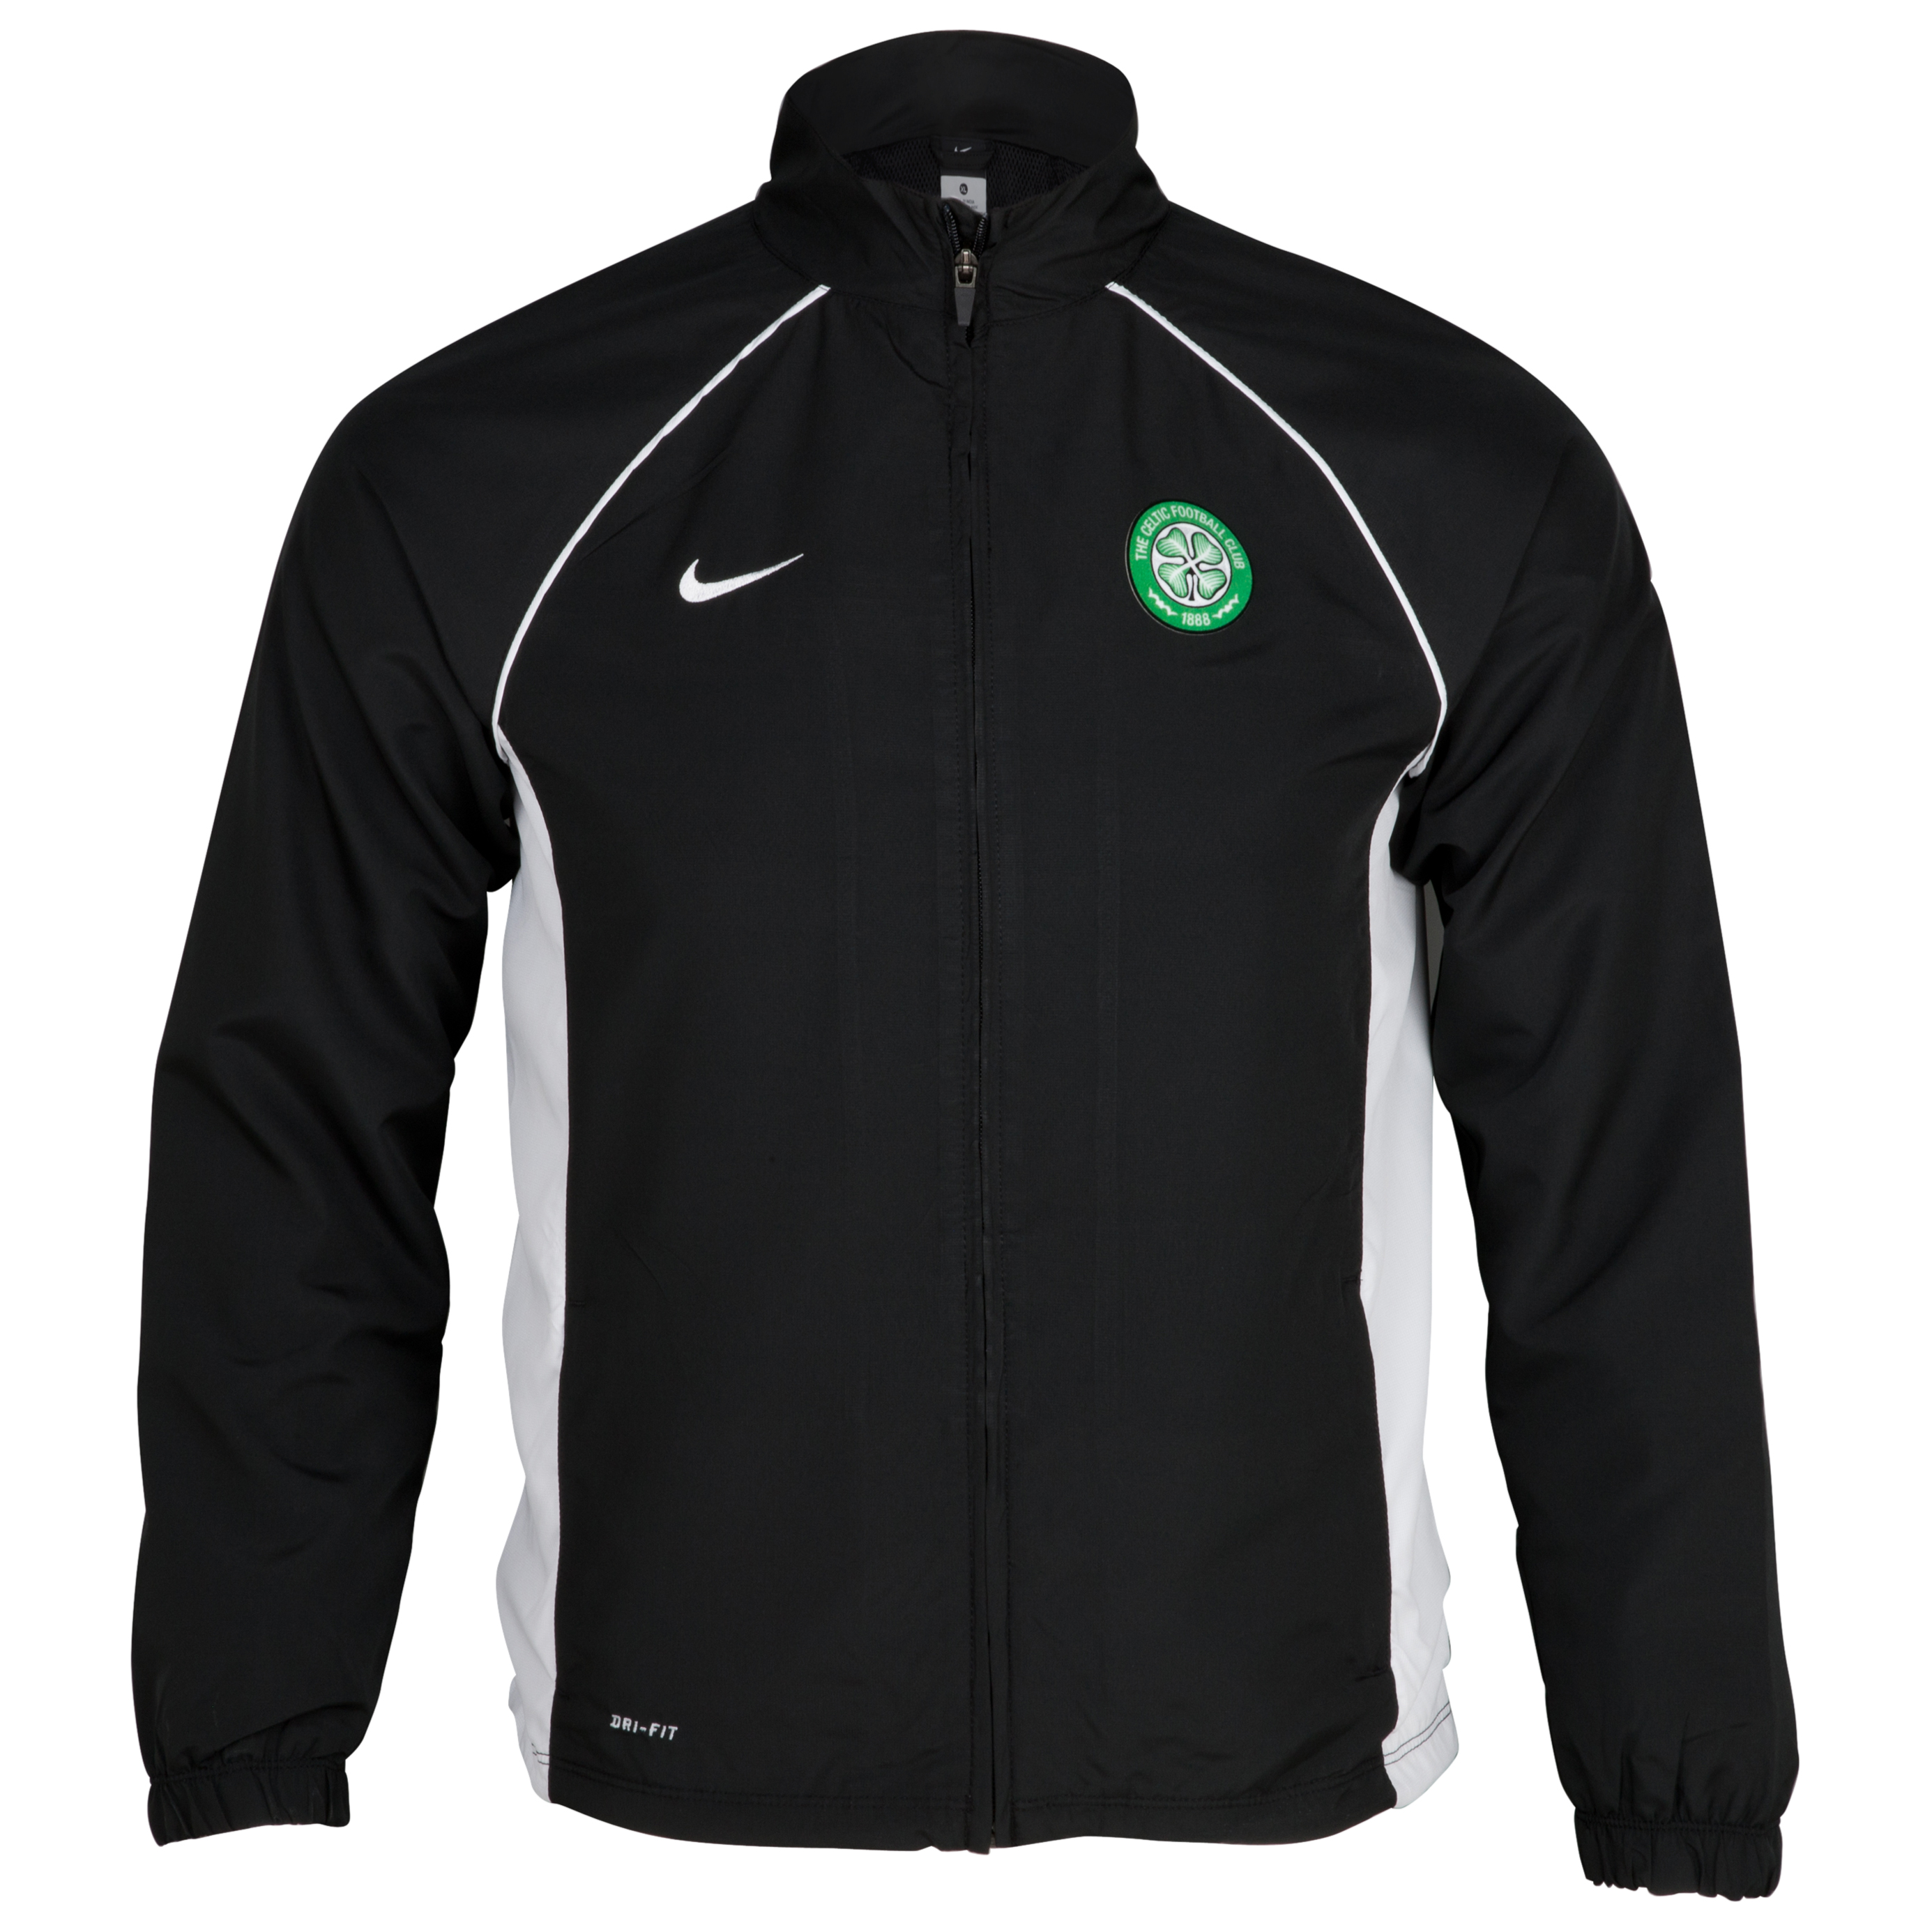 Celtic Sideline Jacket - Black - Youths